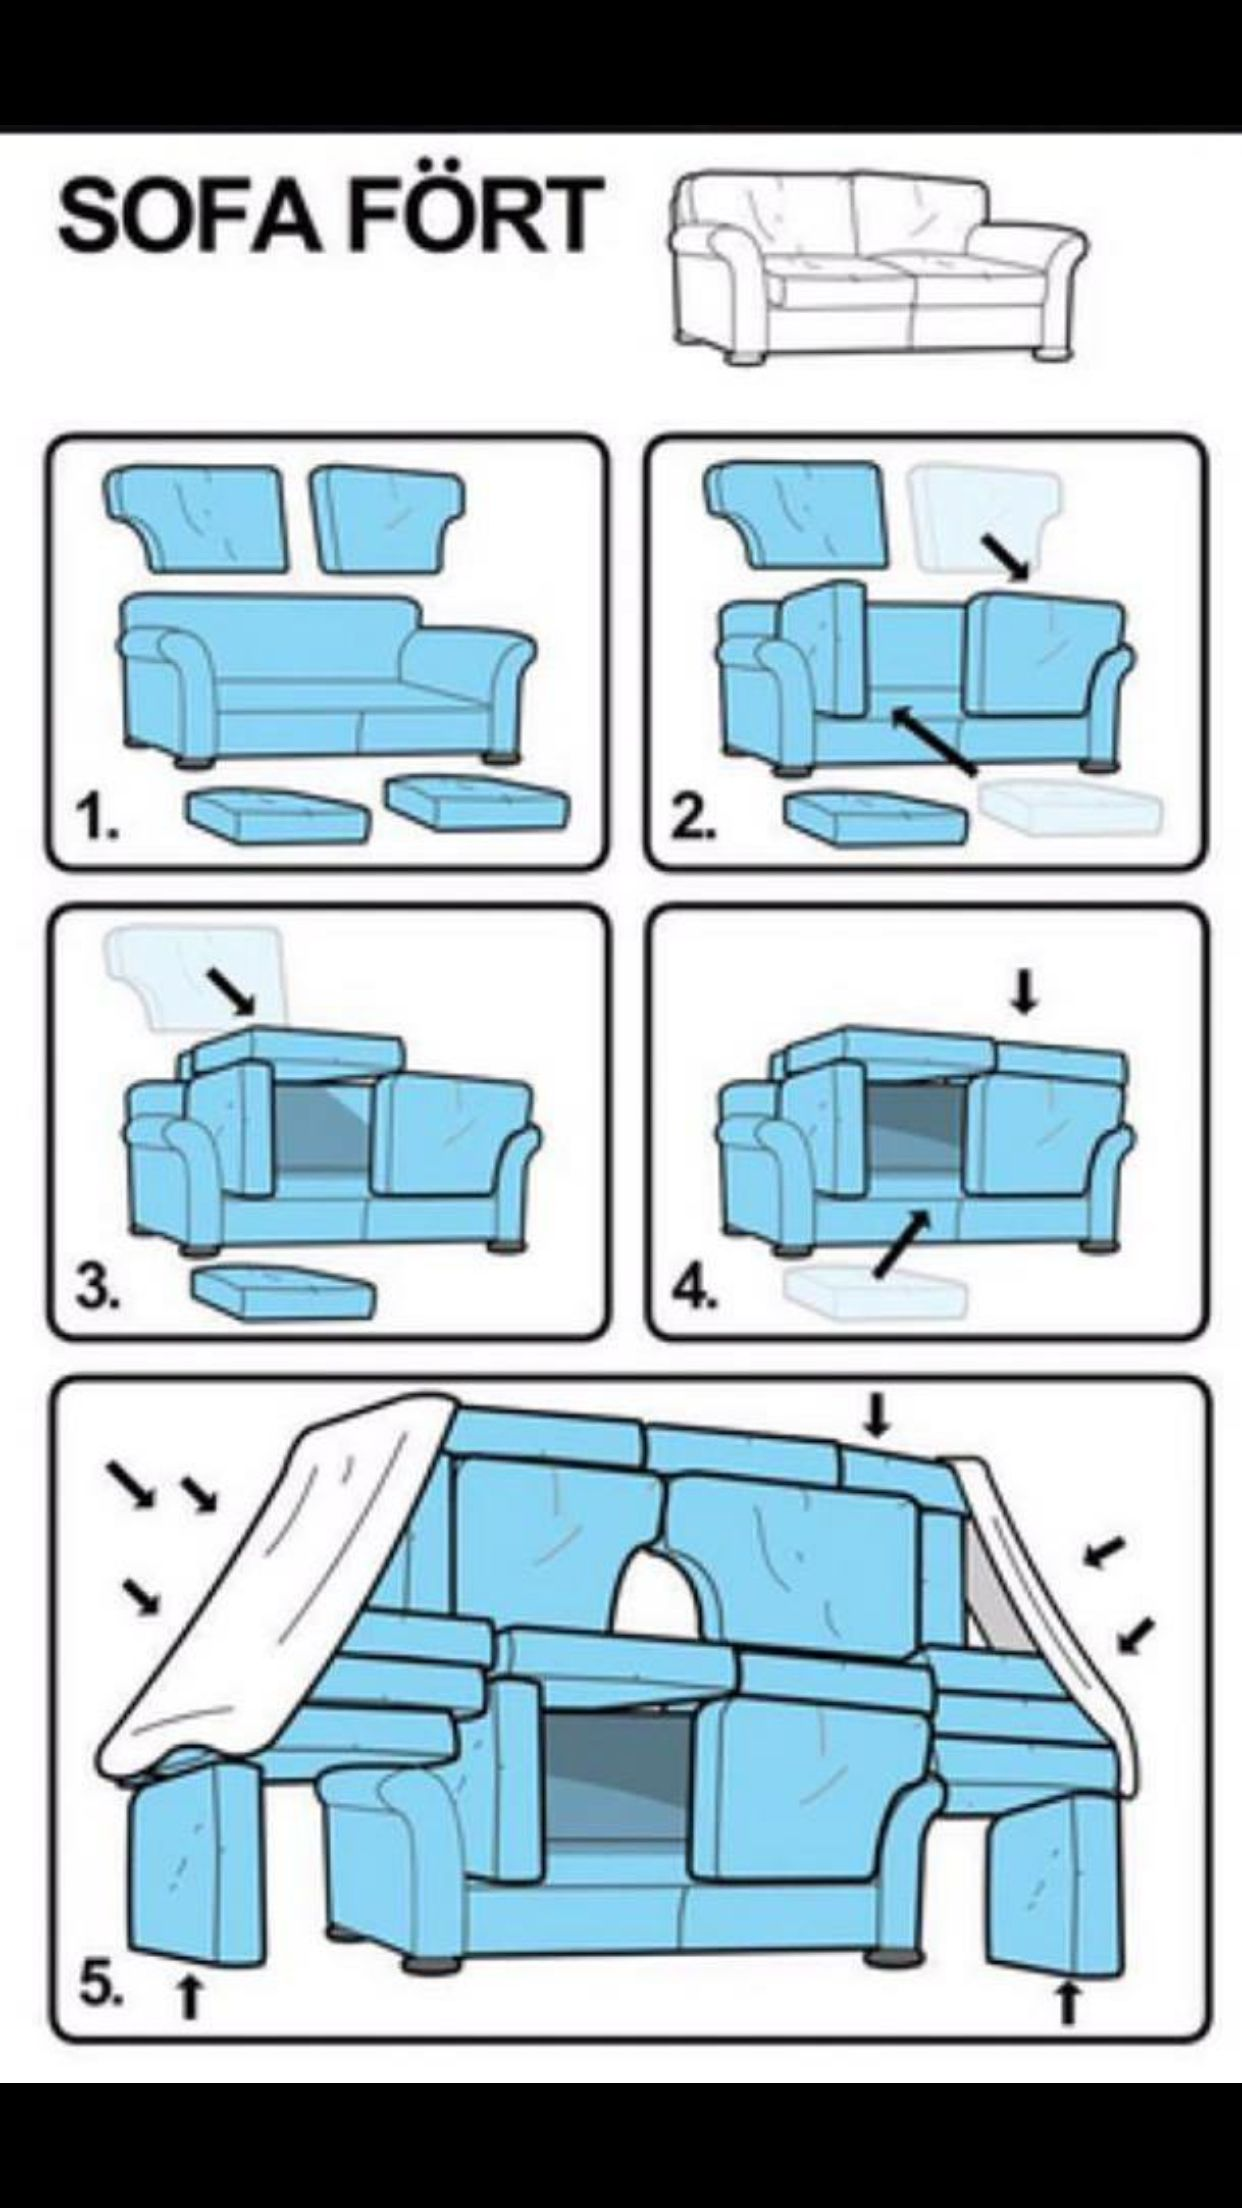 Sofa fort for the home pinterest sofa fort forts for How to find a good home builder